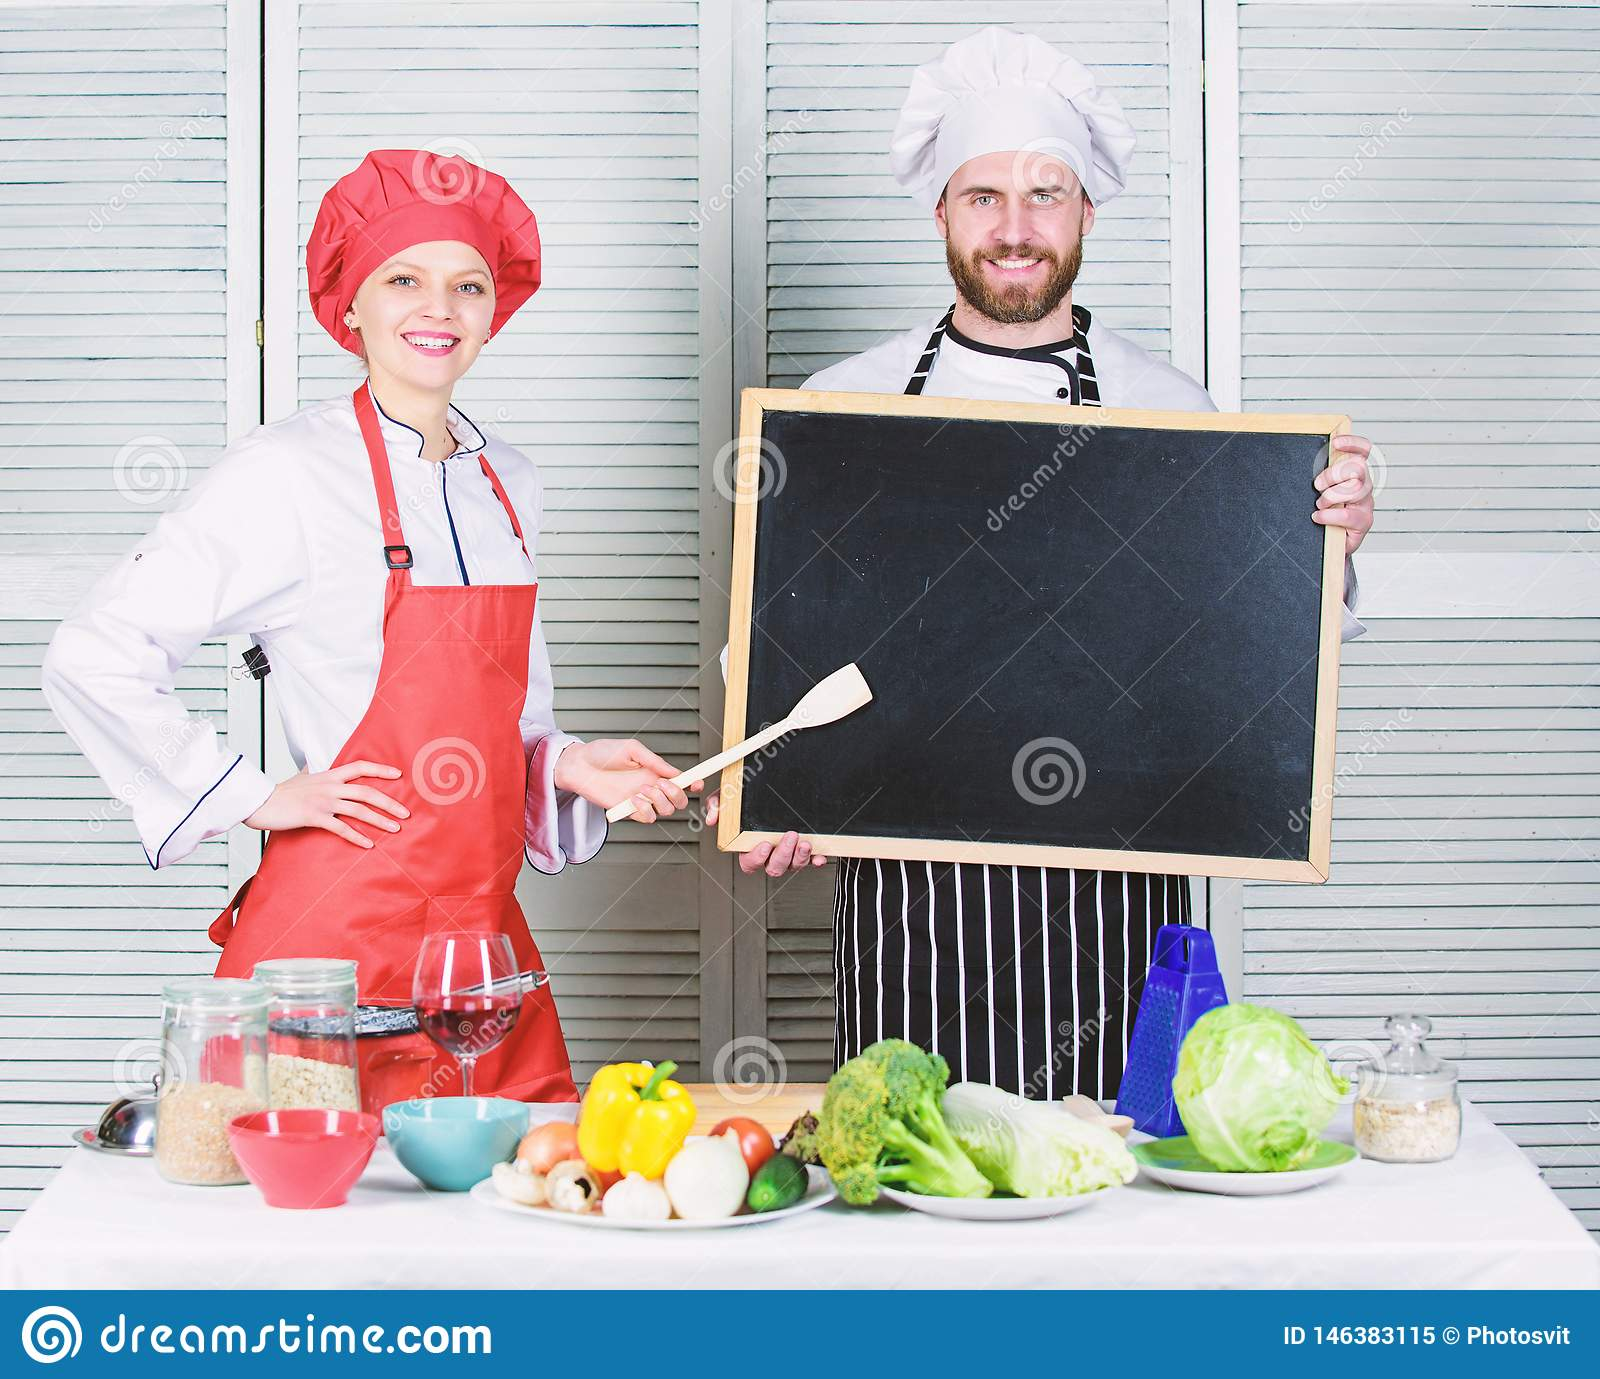 Opening soon. Hiring staff. Woman and man chef hold blackboard copy space. Job position. Cooking delicious meal recipe